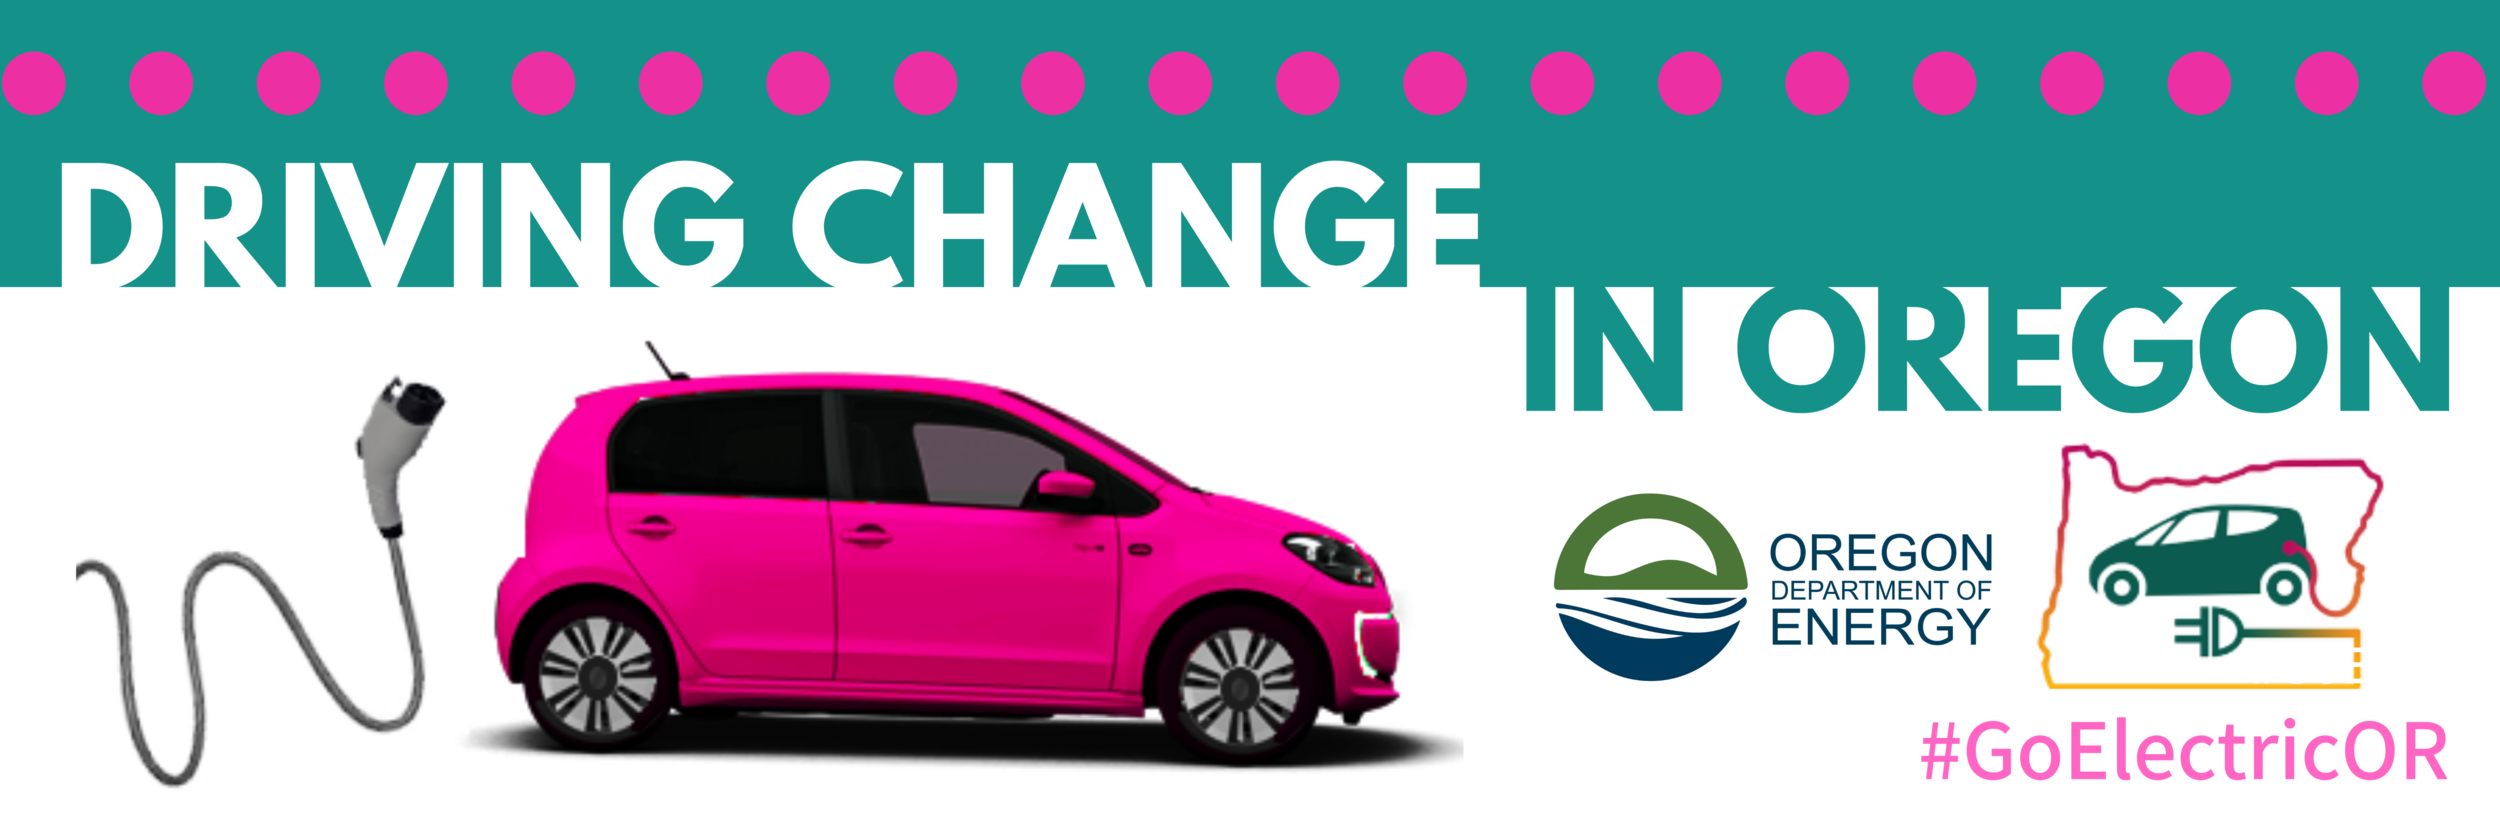 Driving change in Oregon by making electric vehicles and charging infrastructure accessible for all. (5).png